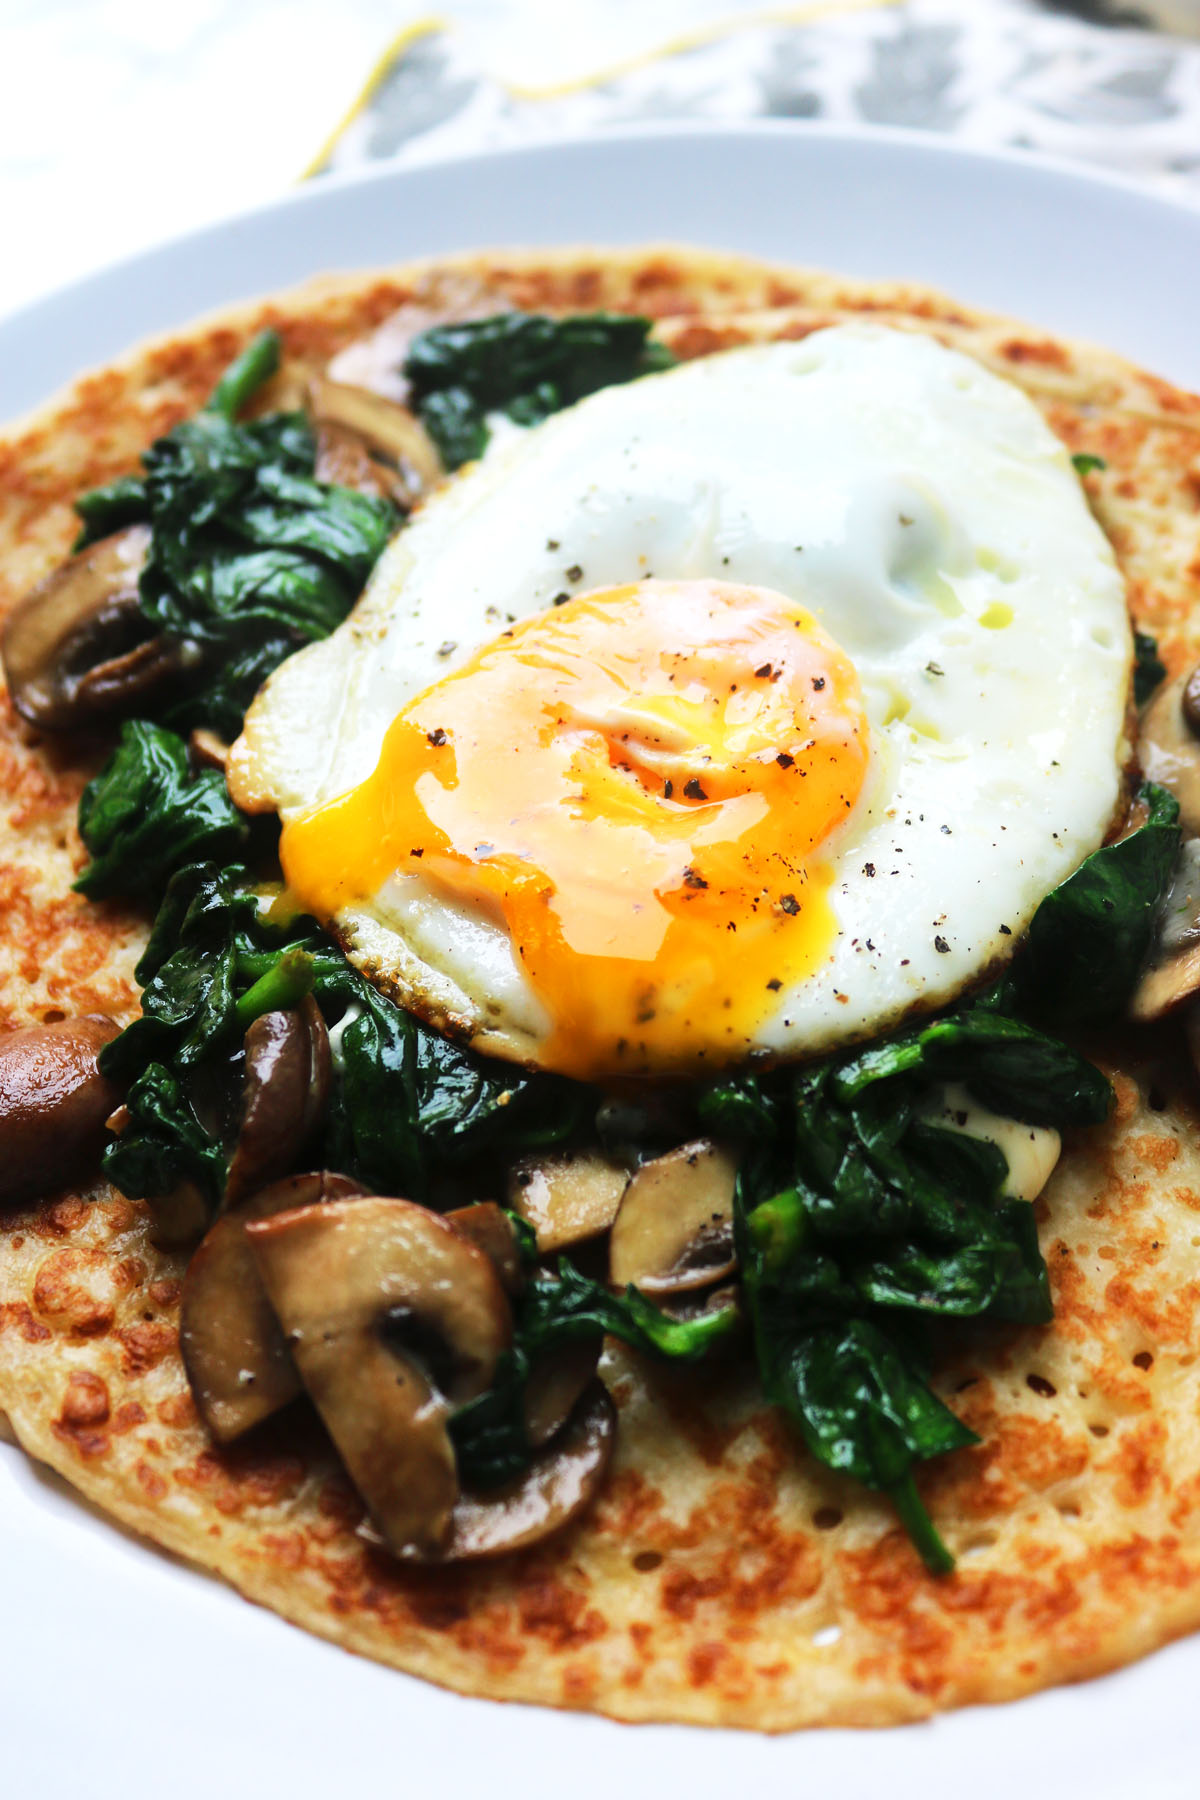 Thin crepes topped with spinach and mushroom, crumbled stilton and a gooey fried egg! The perfect breakfast, brunch or dinner!